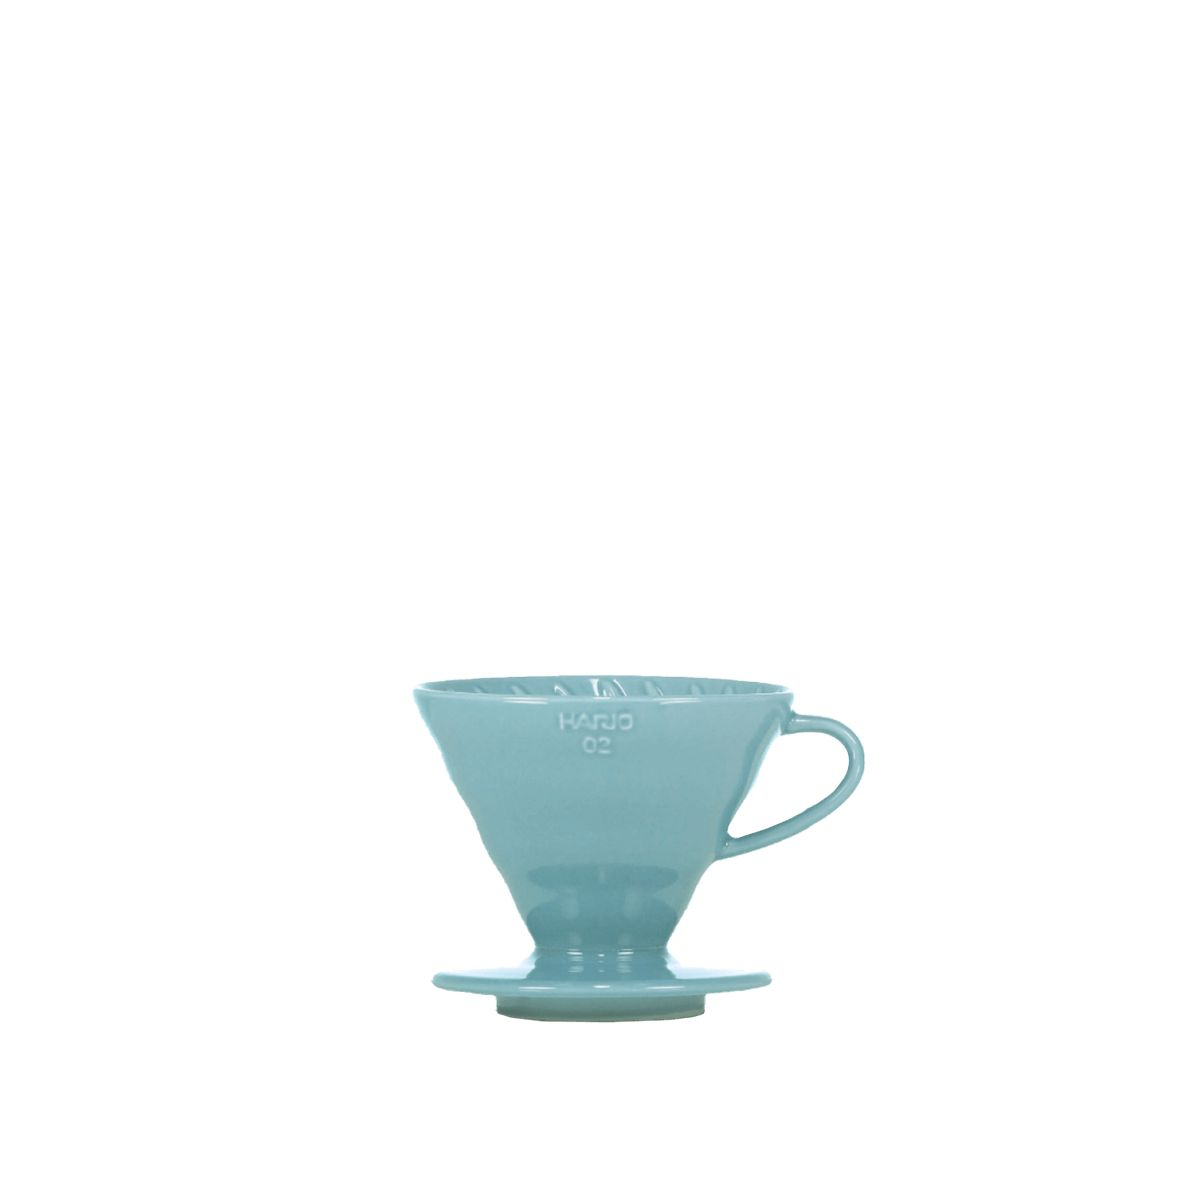 V60 Porcelain Dripper Hario [3/4 cups] - Turquoise blue